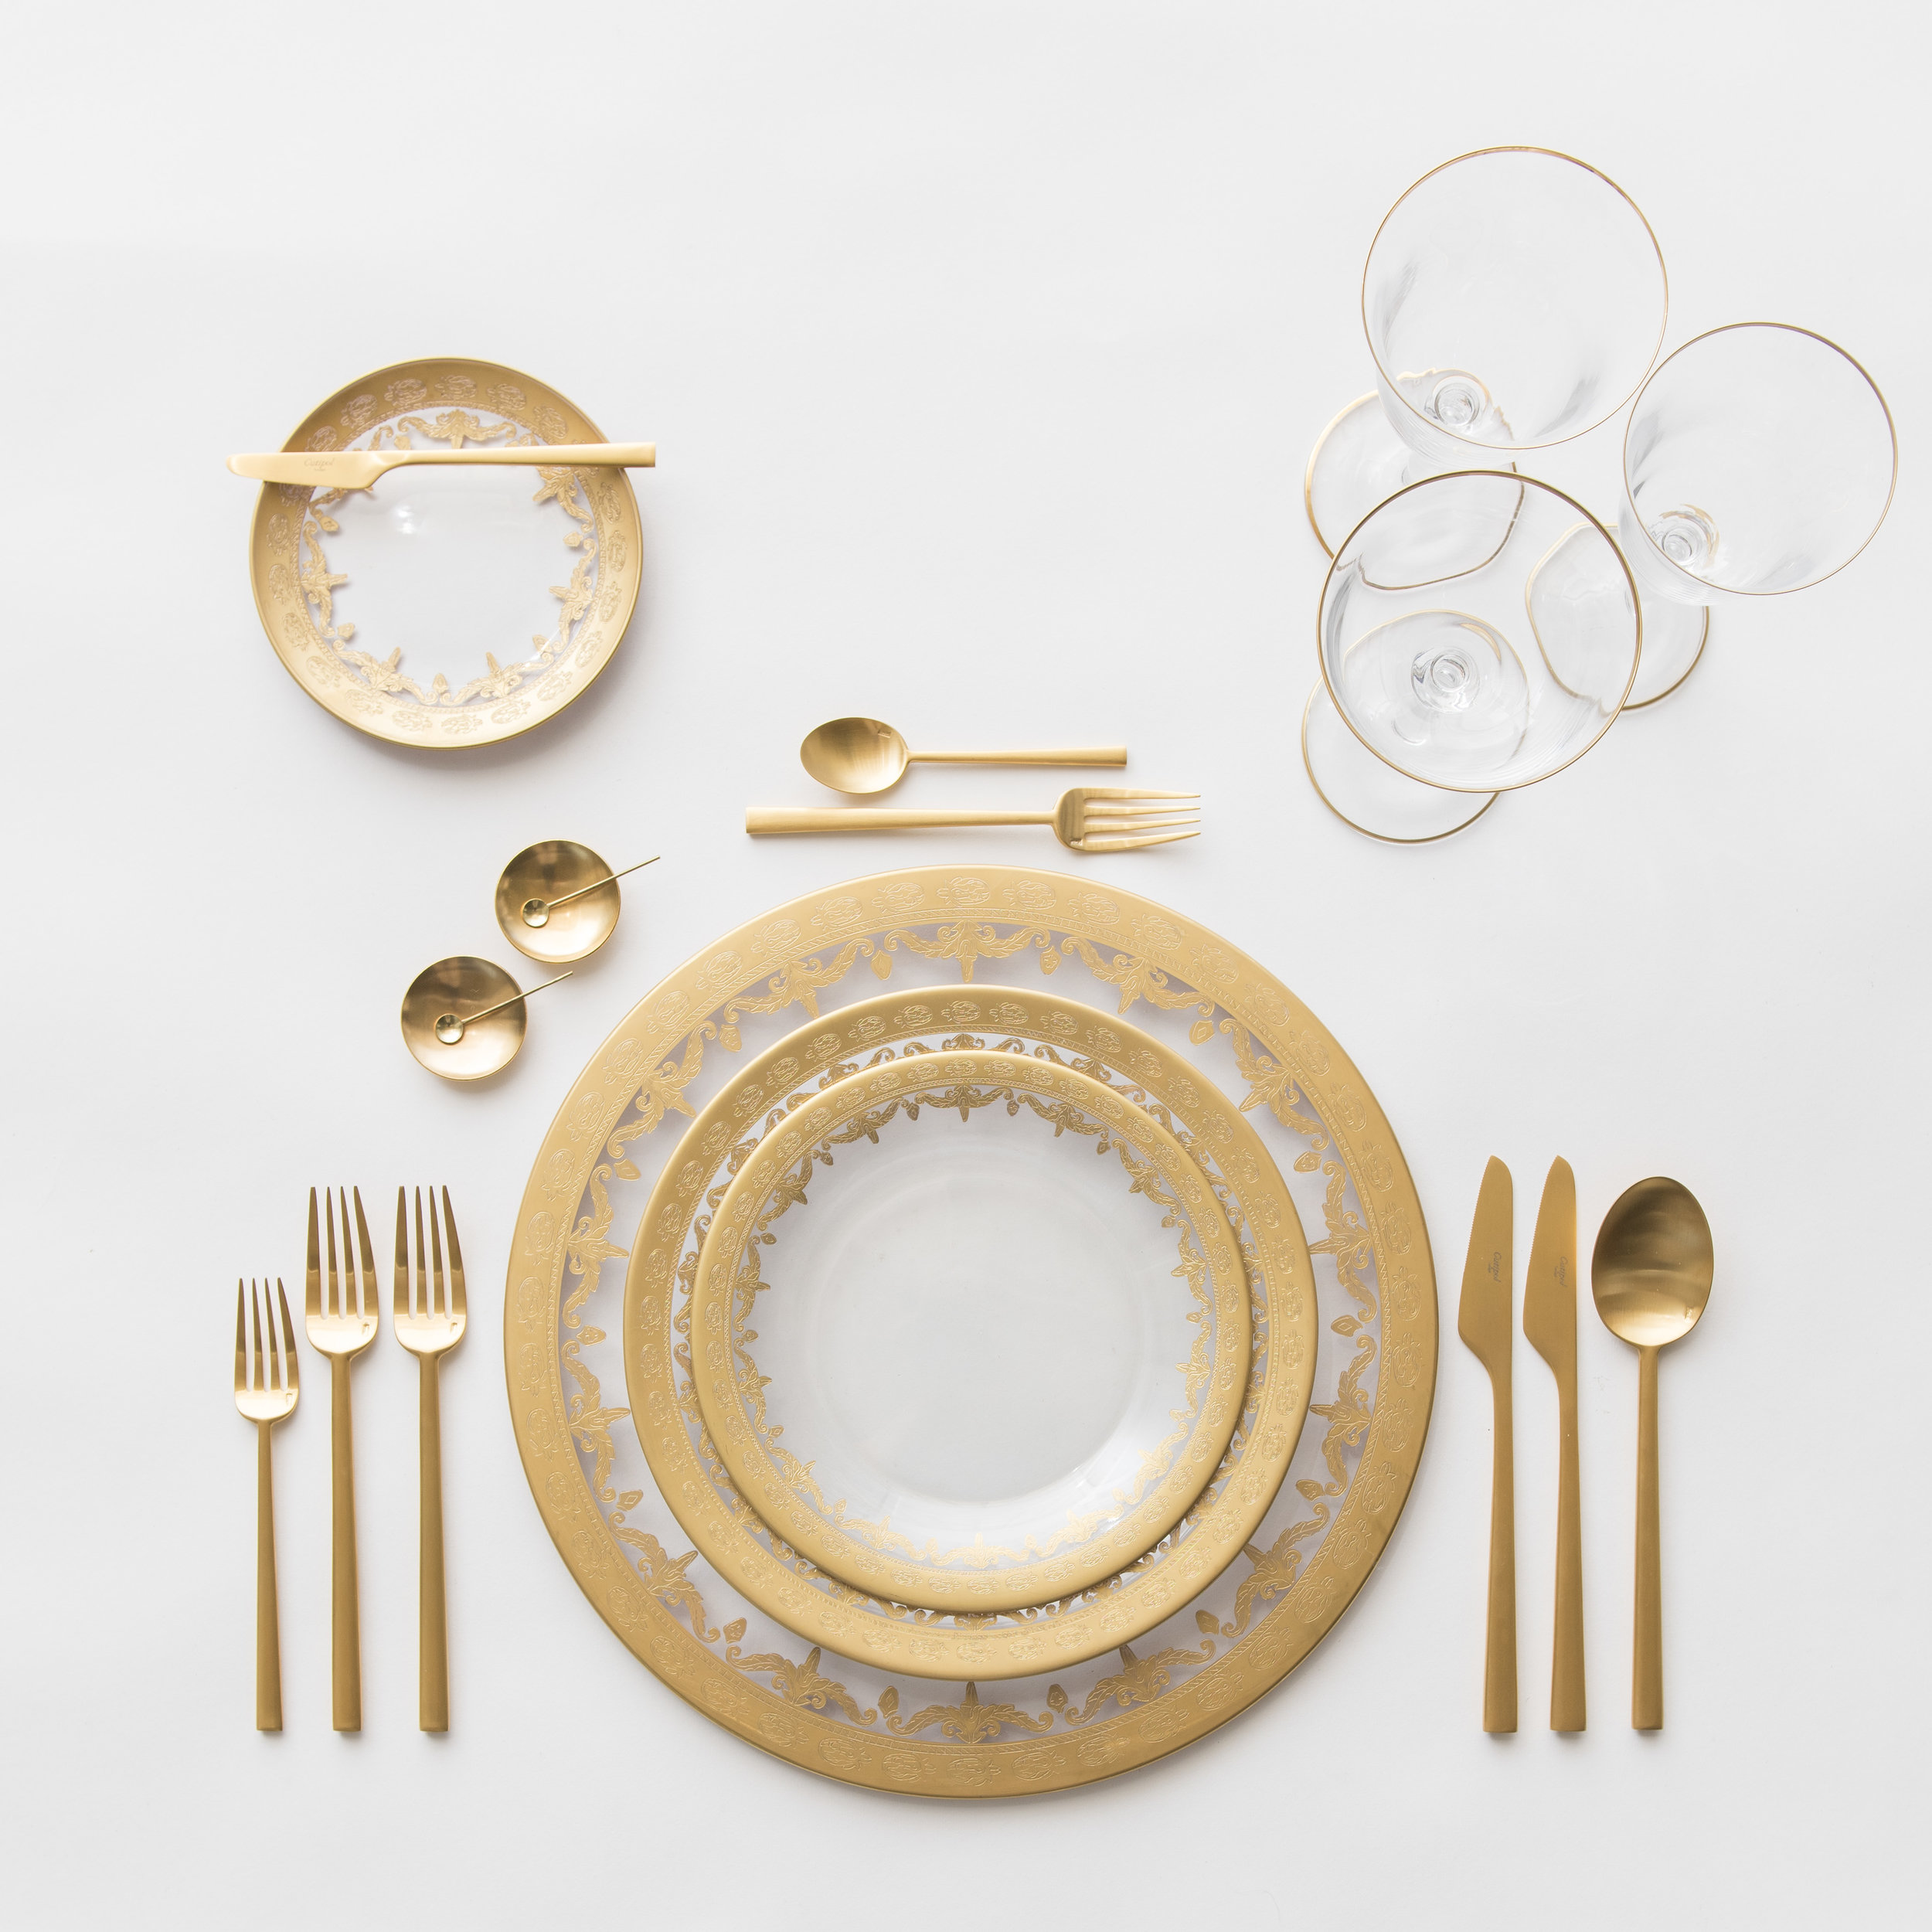 RENT: Versailles Glass Chargers/Dinnerware in 24k Gold + Rondo Flatware in Brushed 24k Gold + Chloe 24k Gold Rimmed Stemware + 14k Gold Salt Cellars + Tiny Gold Spoons   SHOP: Rondo Flatware in Brushed 24k Gold + Chloe 24k Gold Rimmed Stemware + 14k Gold Salt Cellars + Tiny Gold Spoons